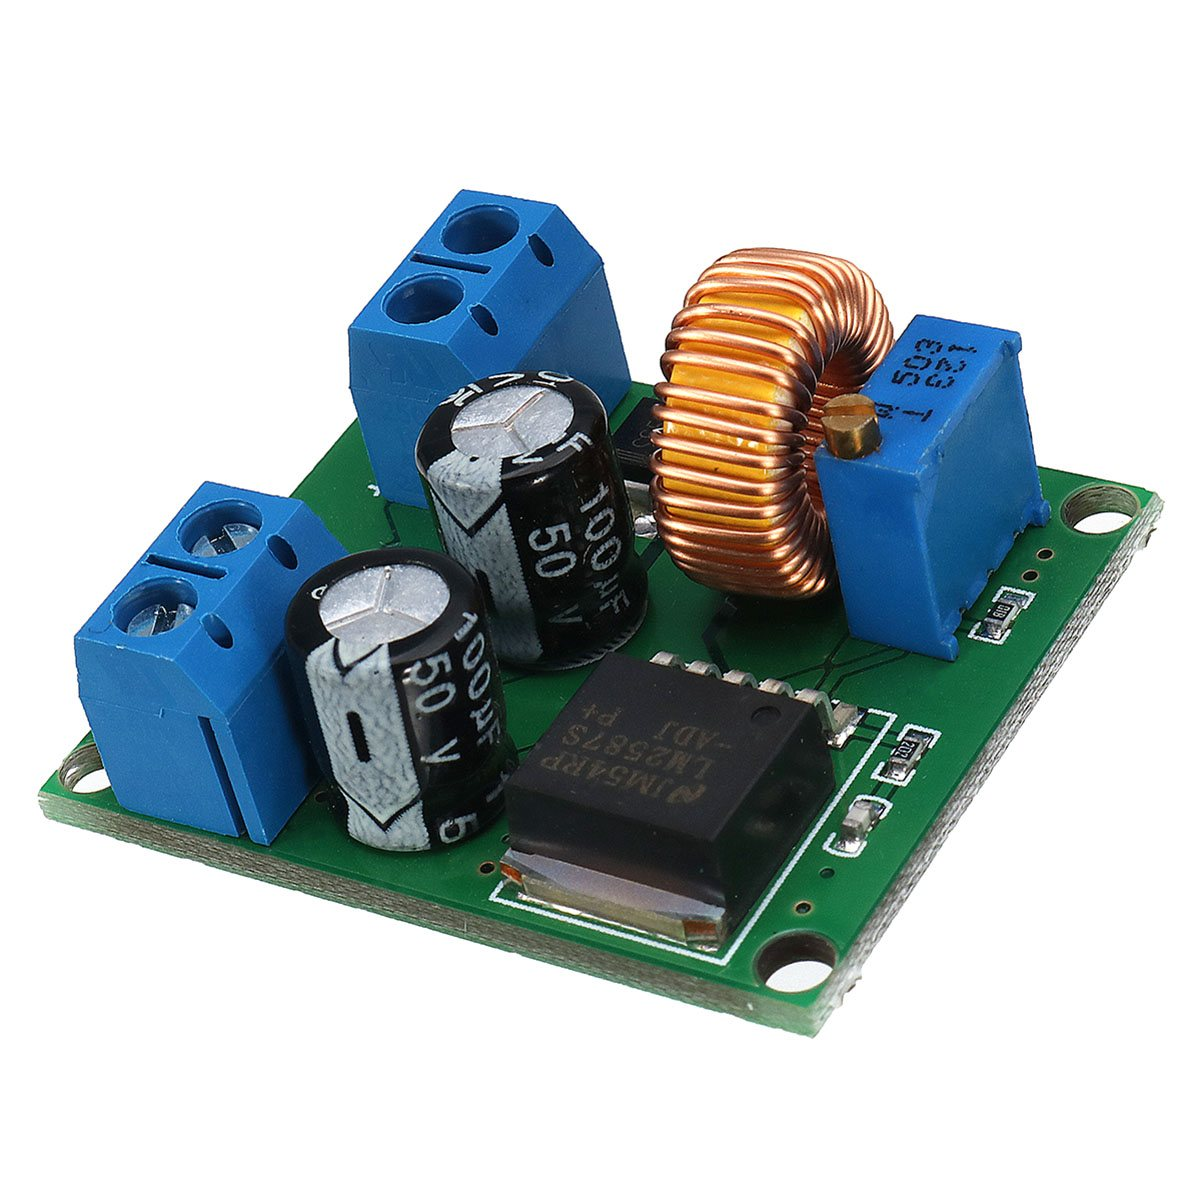 DC-DC 3V-35V To 4V-40V Adjustable Step Up Power Module 3V 5V 12V To 19V 24V 30V 36V High Power Boost Inverters Converter dc dc adjustable boost module 2a boost plate 2a step up module with micro usb 2v 24v to 5v 9v 12v 28v